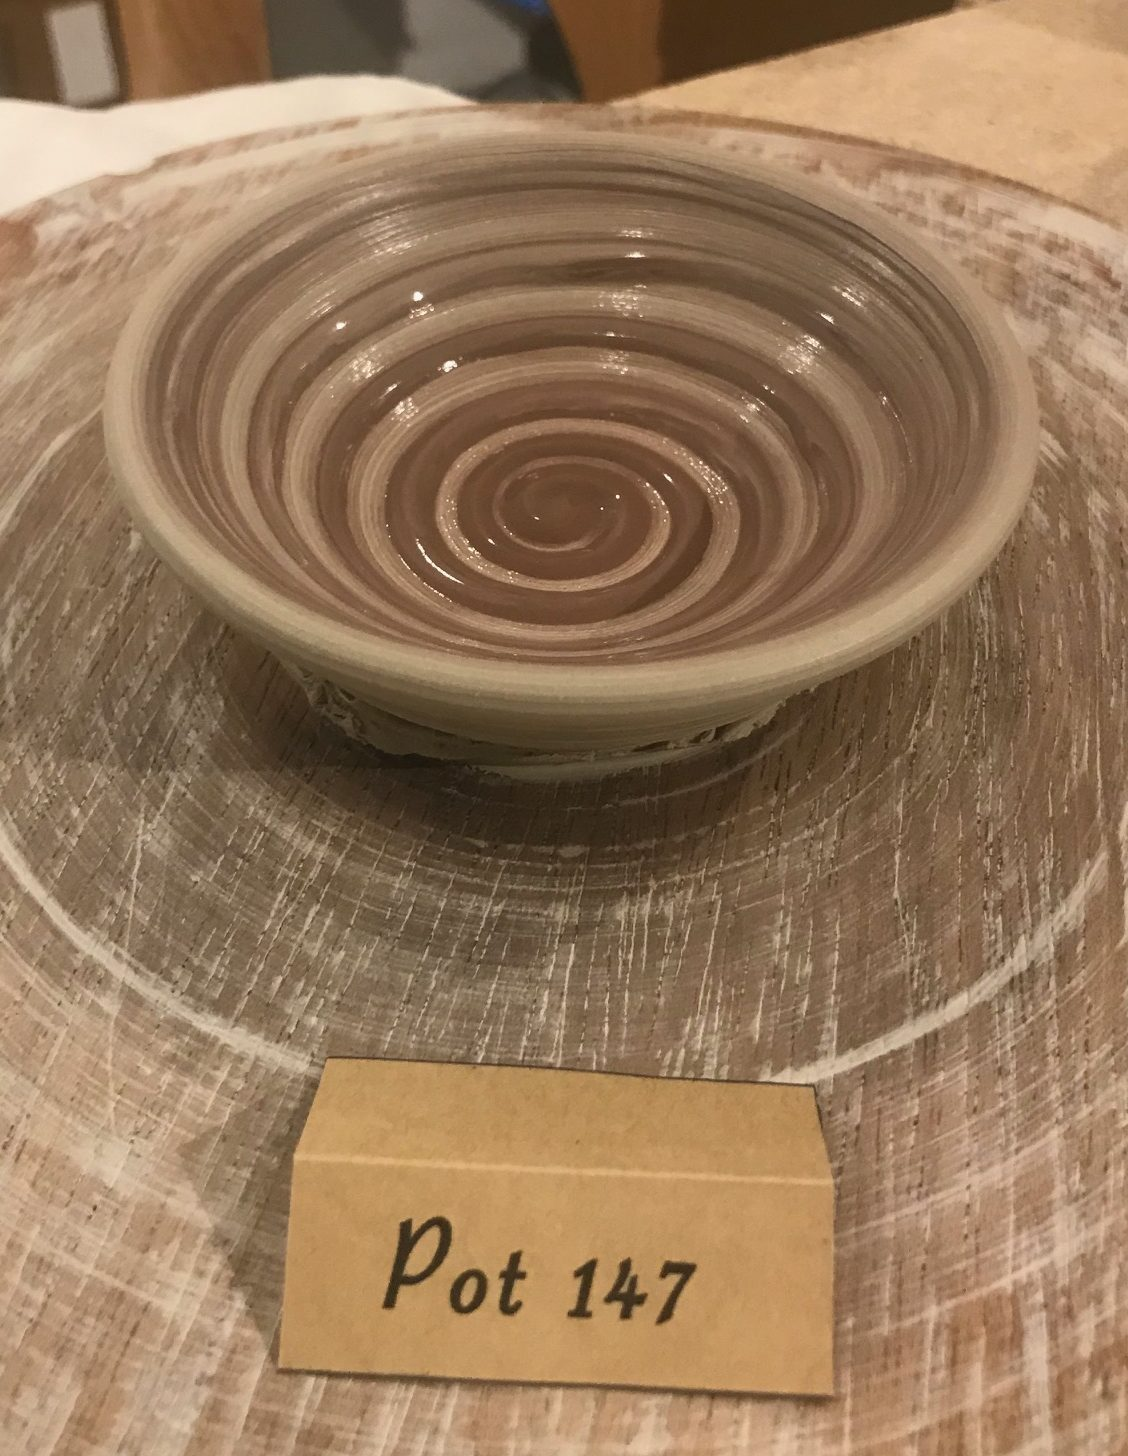 Day 95: 100 Pots in 100 Days